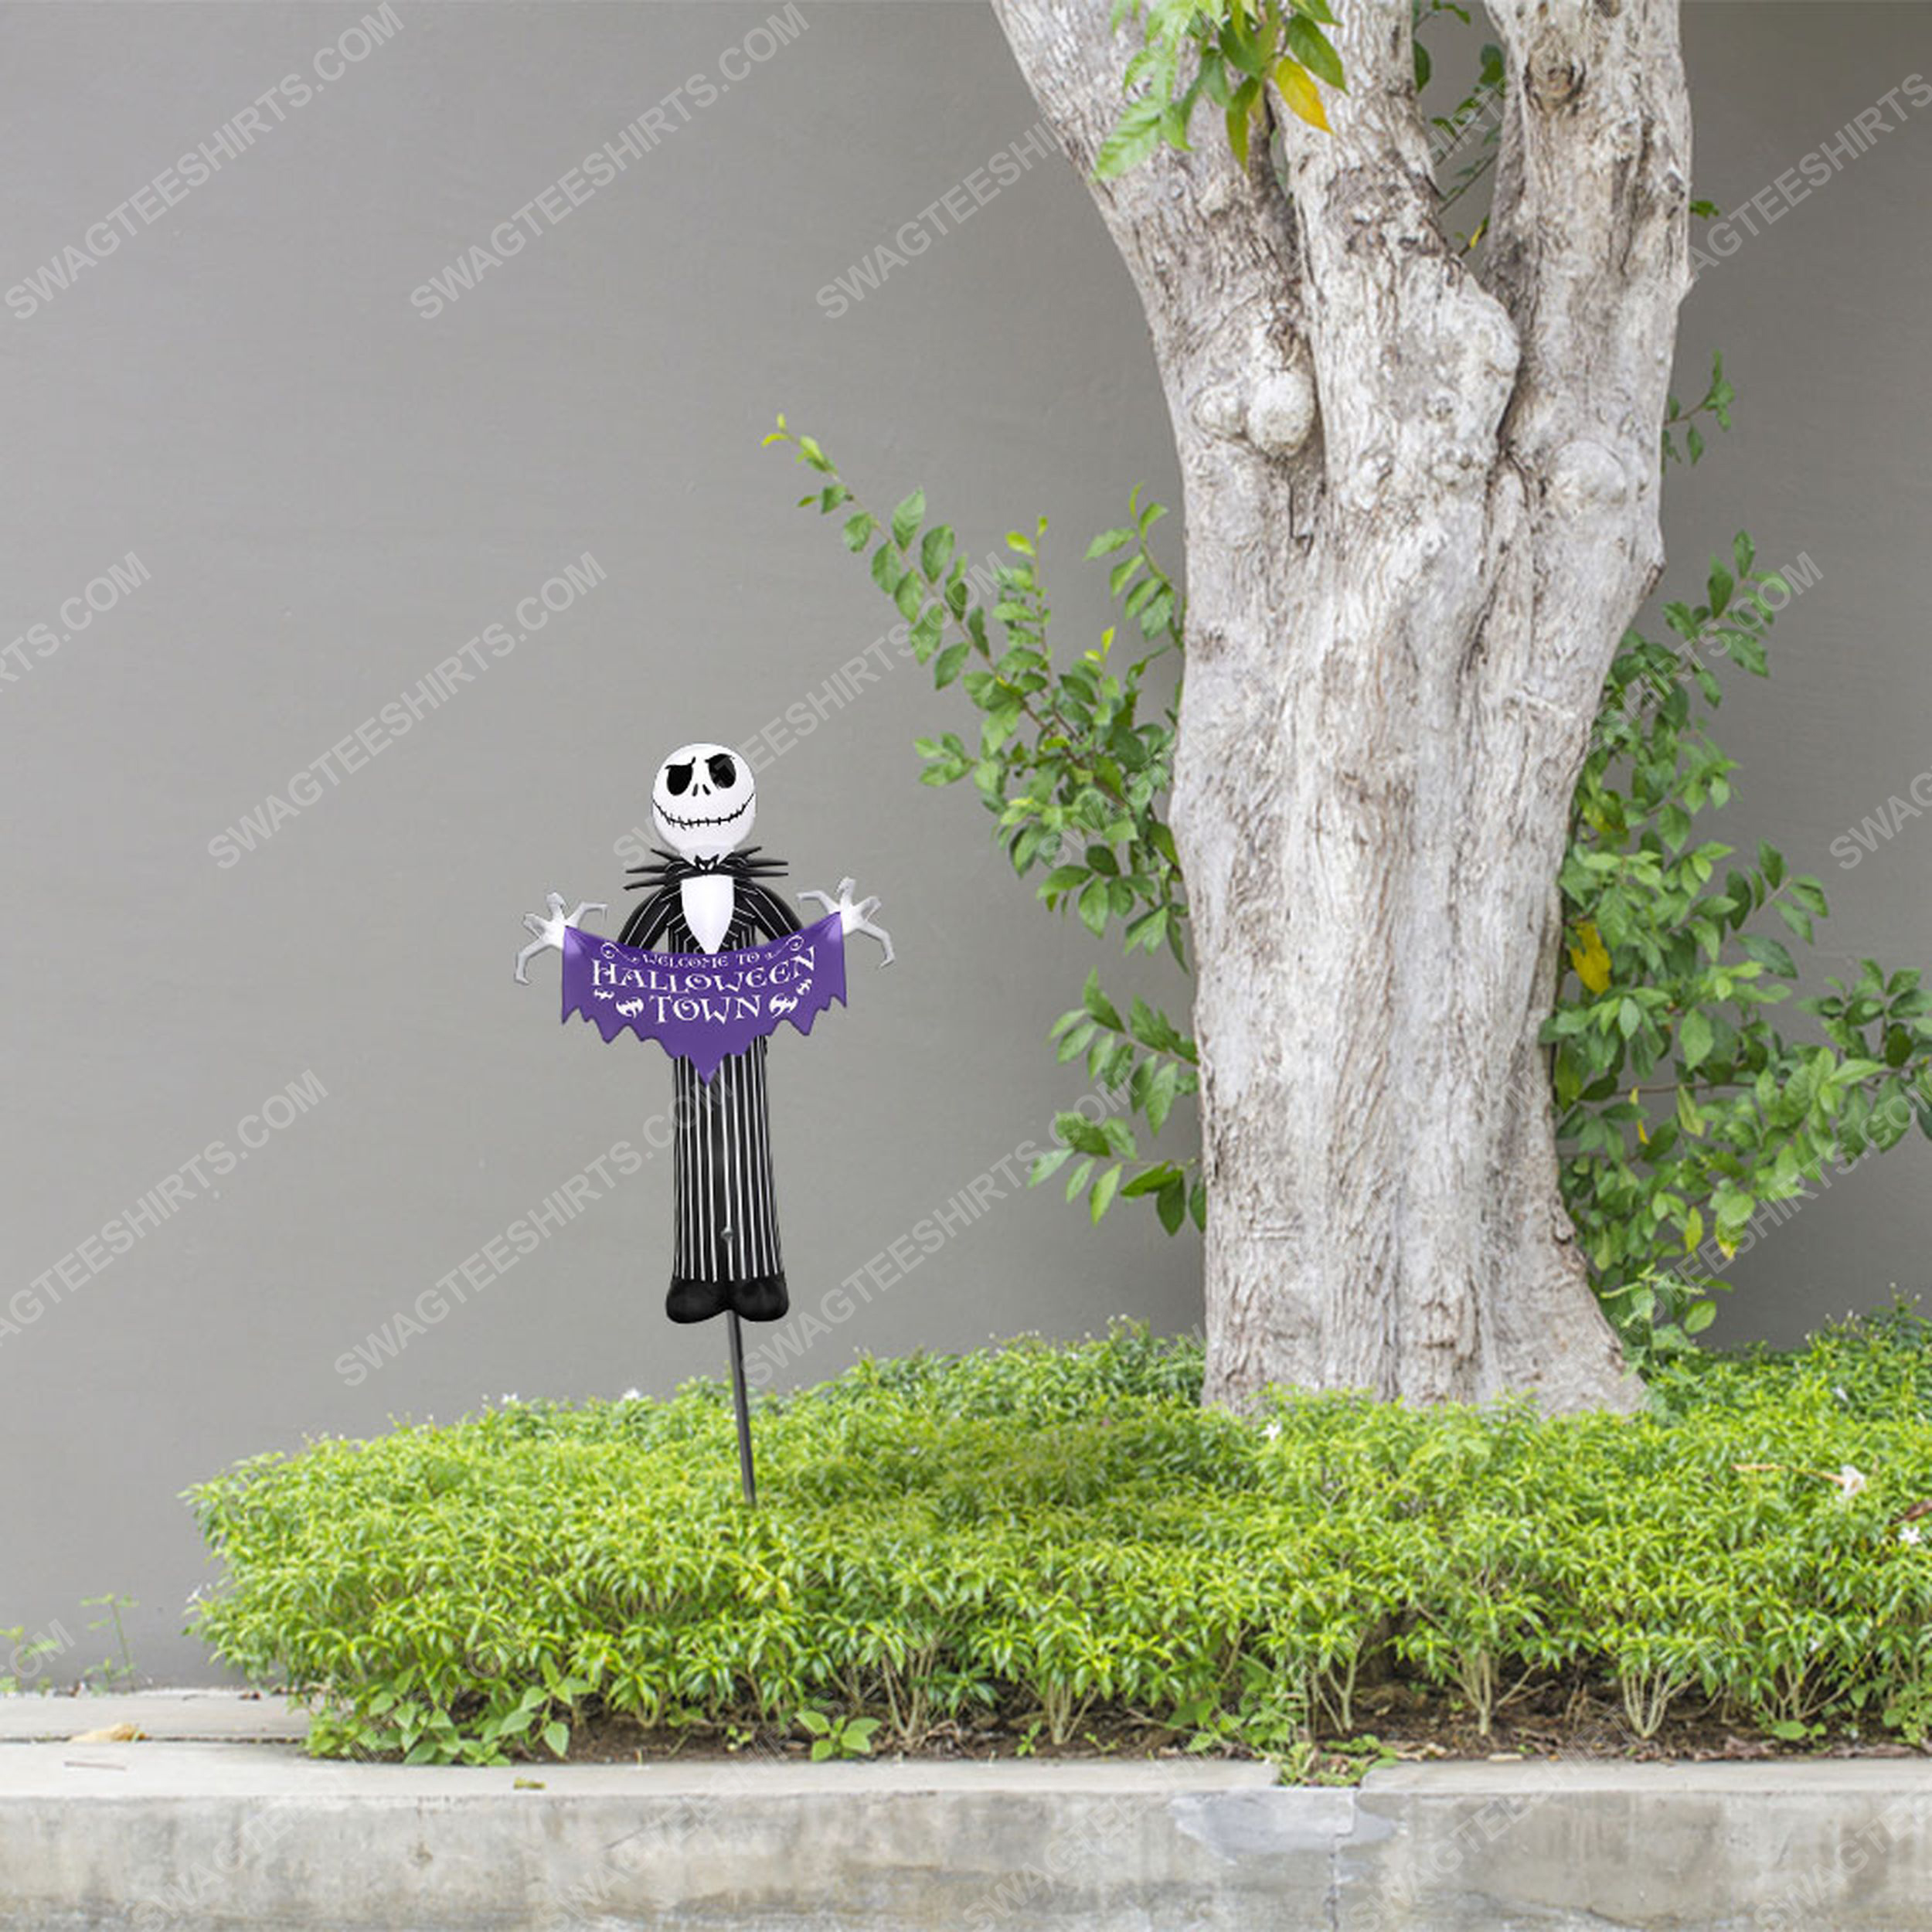 Jack skellington welcome to halloween town yard sign 2(1)